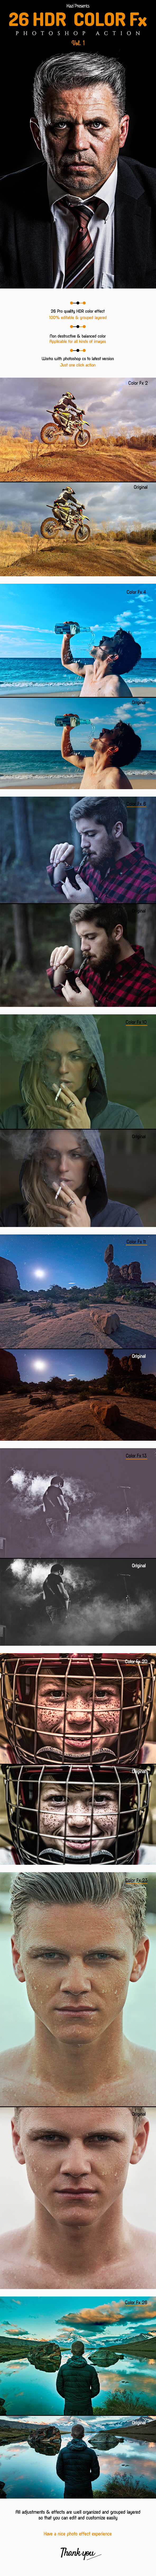 26 HDR Color Fx Action - Photo Effects Actions